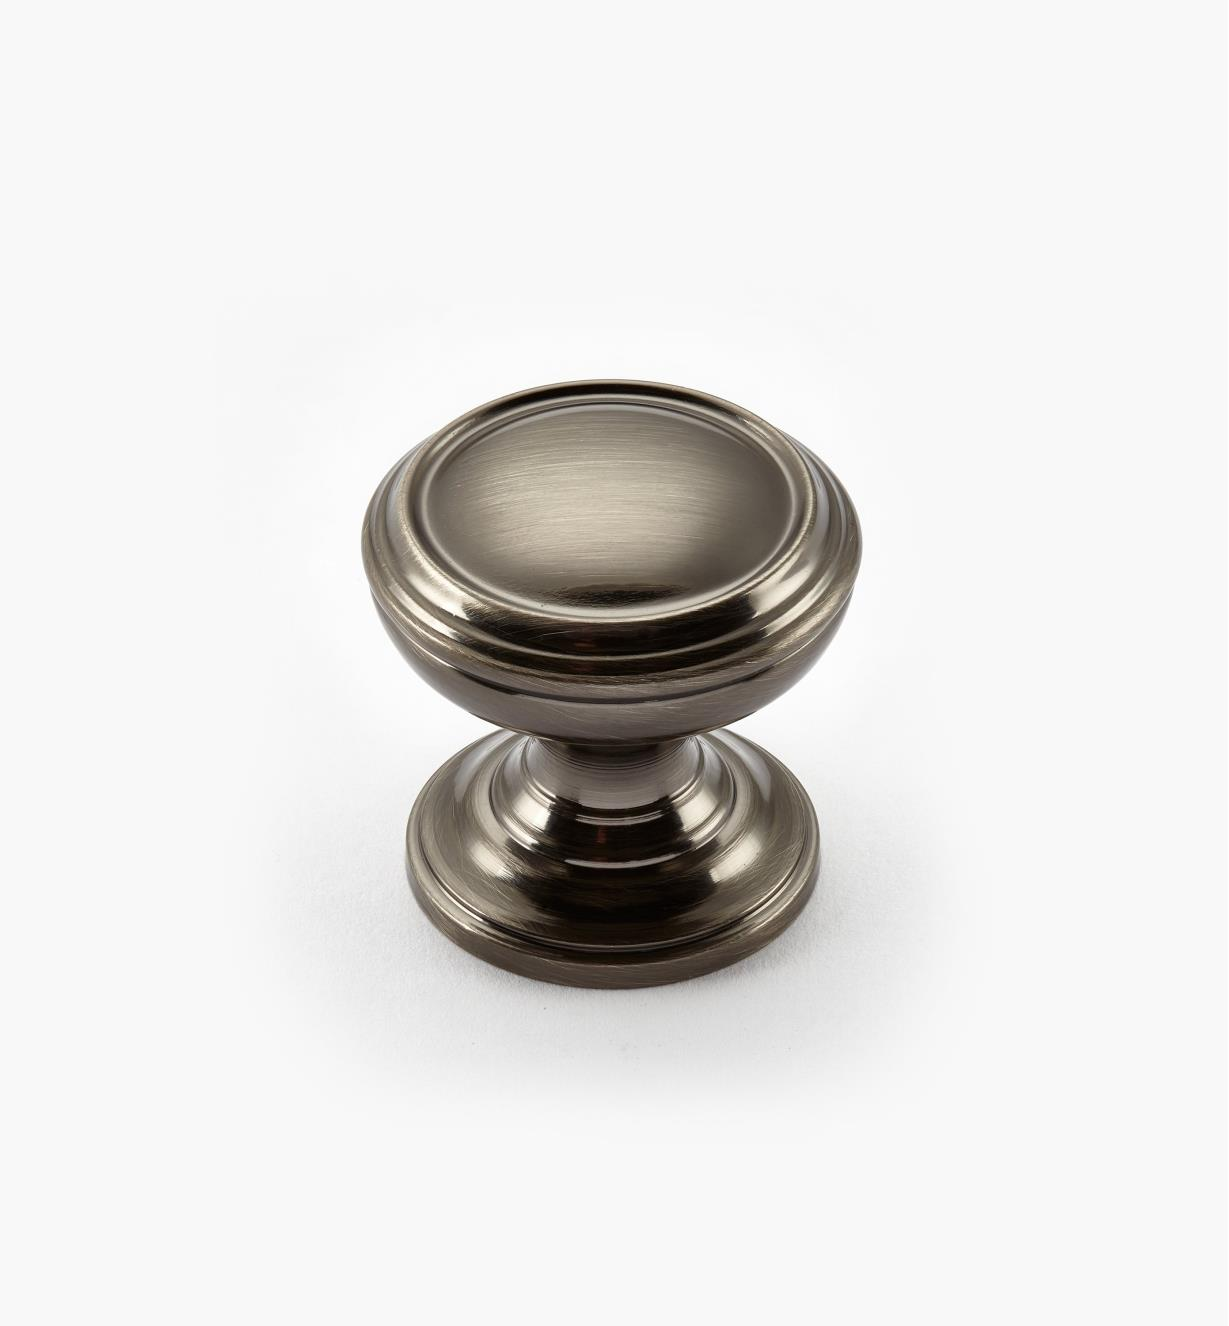 "02A2232 - Revitalize Gunmetal 1 1/4"" Plain Round Knob, each"